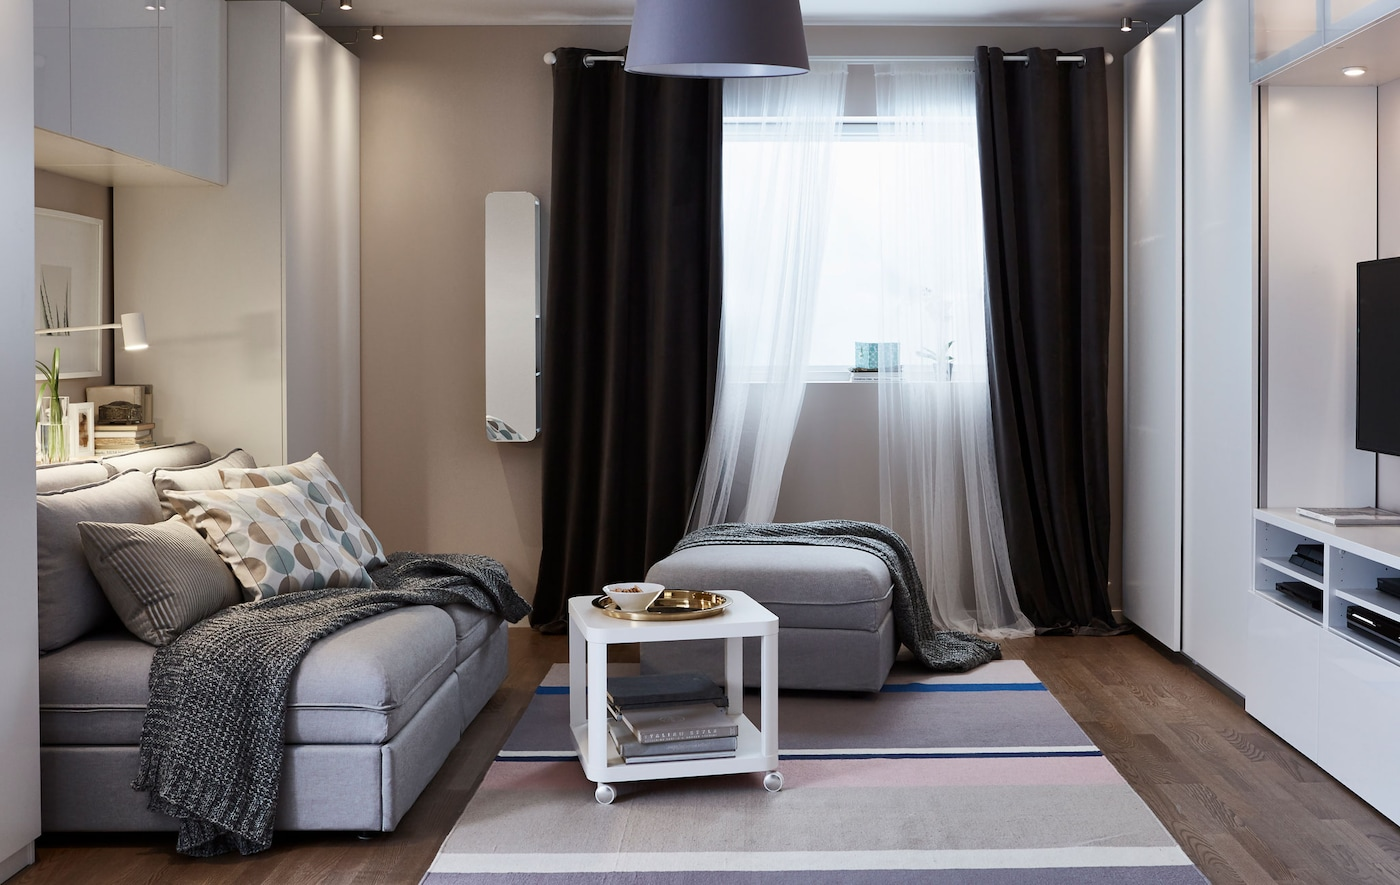 A small living room is set up in its living room function.